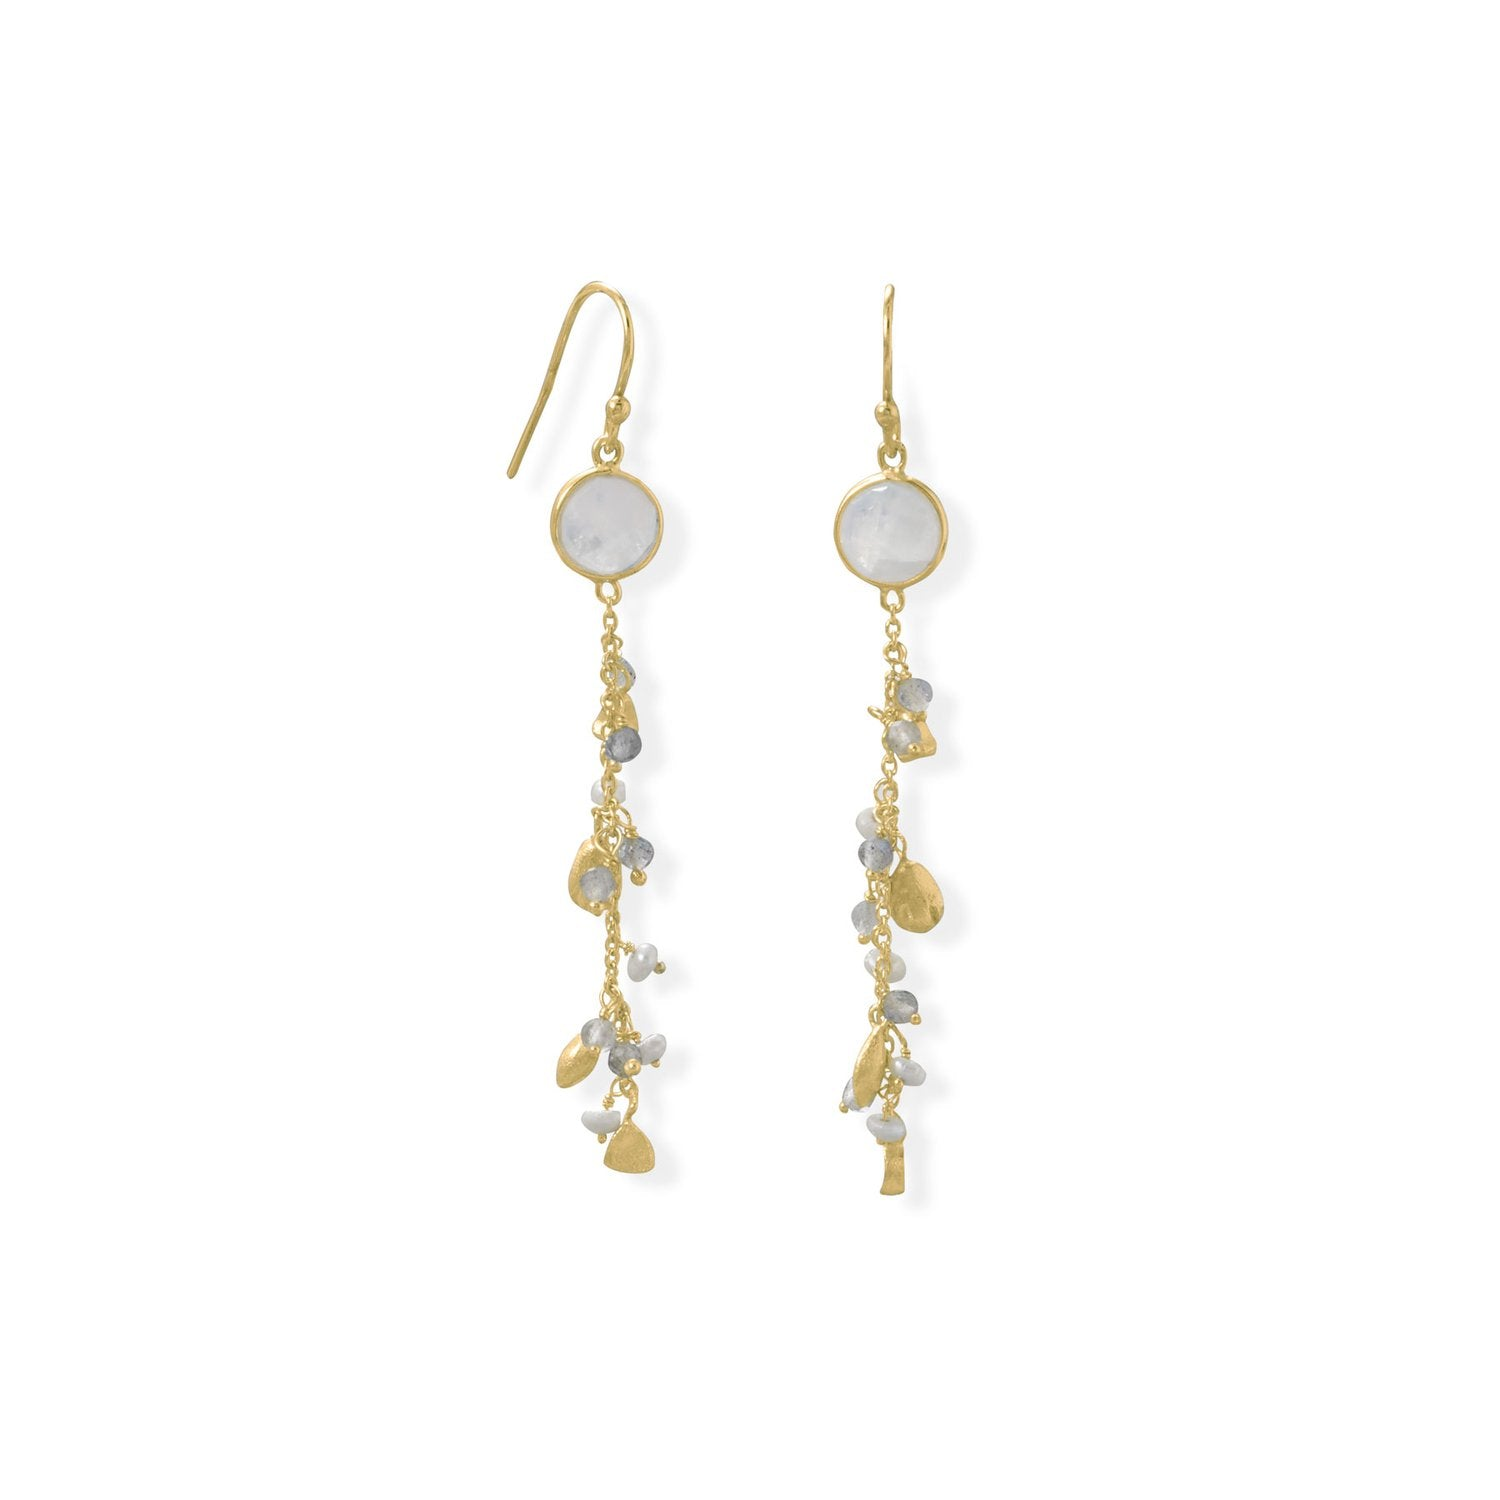 14 Karat Gold Plated Rainbow Moonstone, Labradorite and Pearl Drop Earring